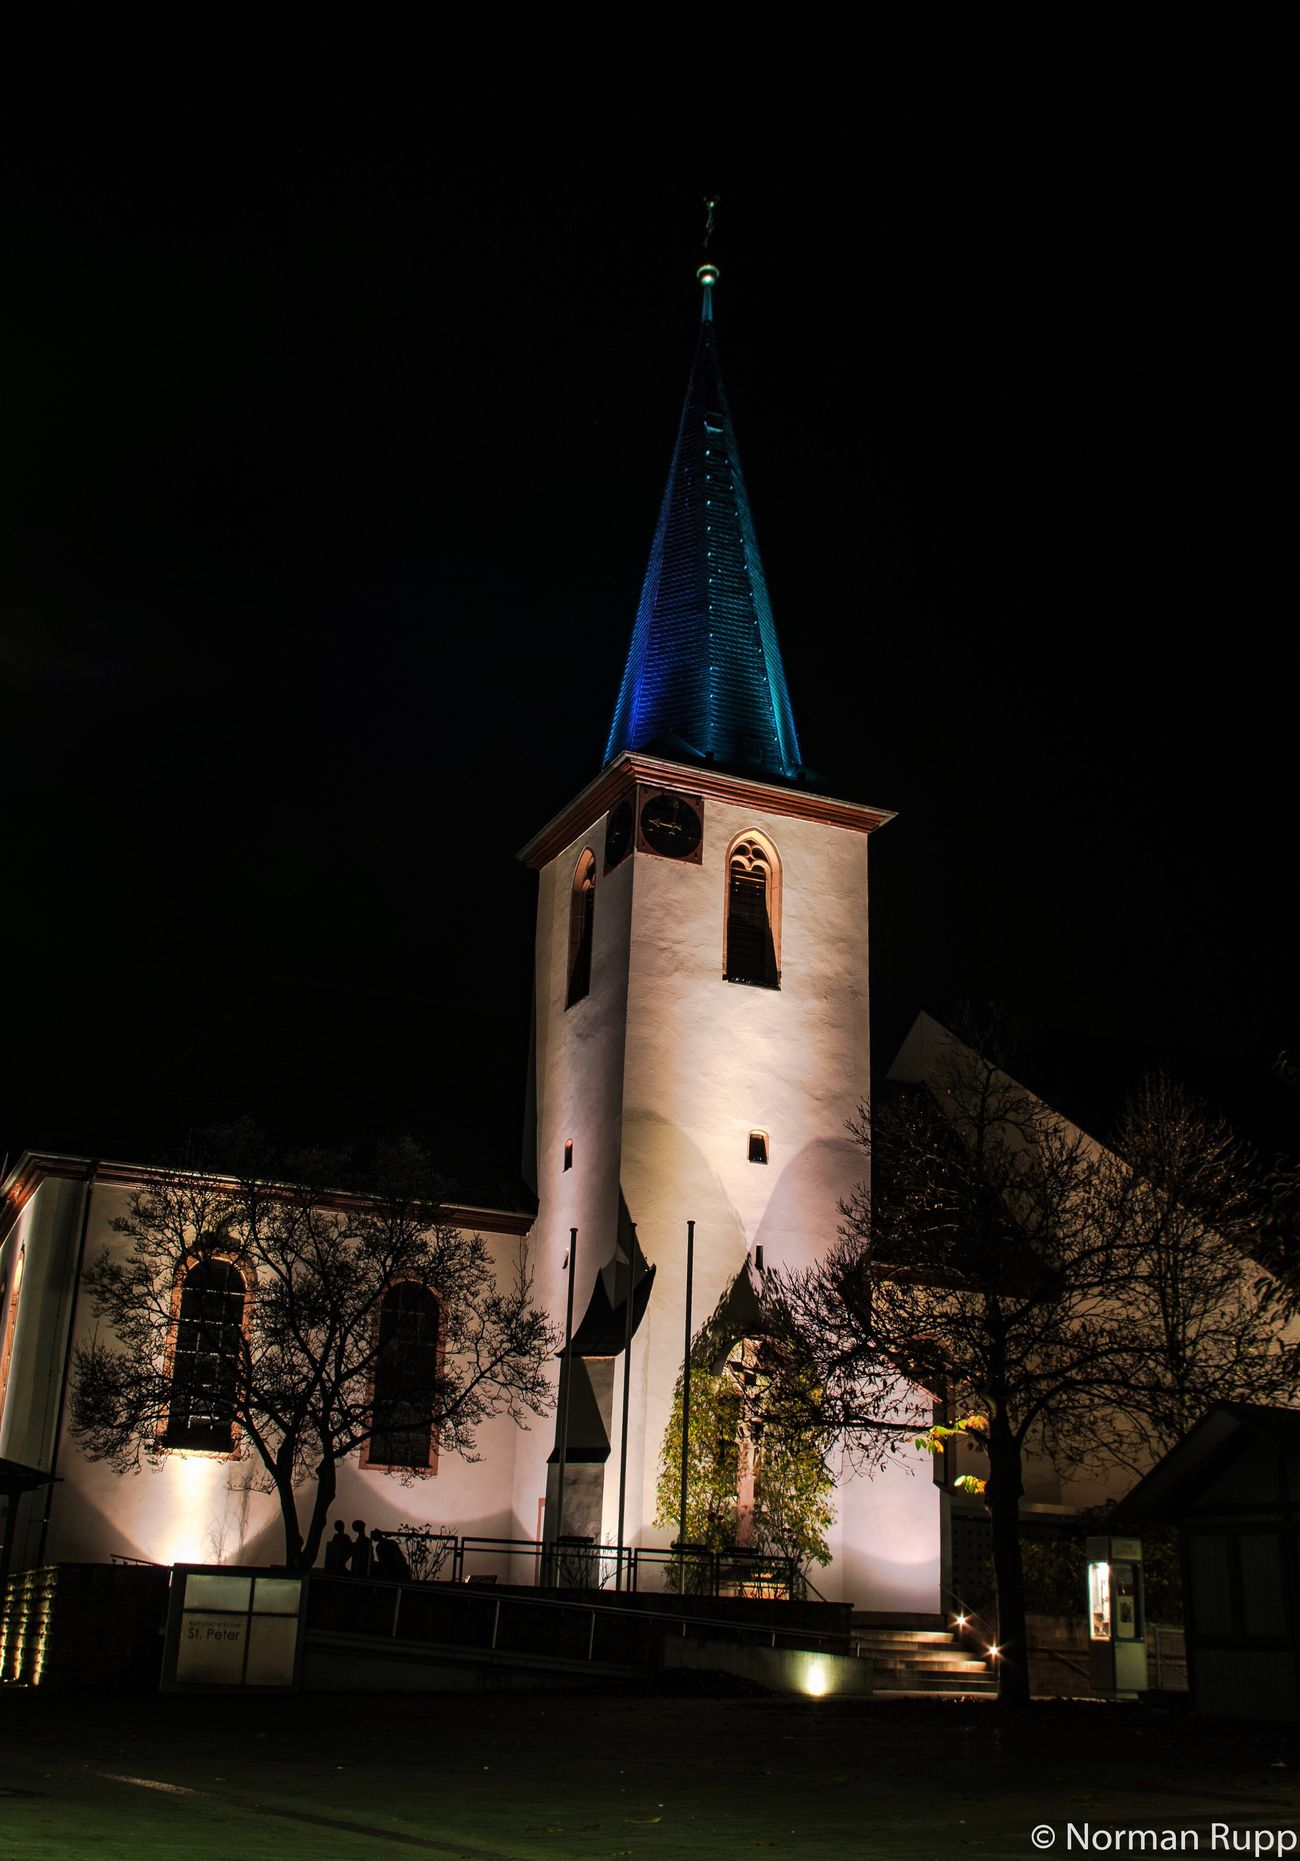 Chruch in Walldorf Badenwürttemberg Germany . Night Tower Long Exposure Sky Street Lights Dark Normanrupp Pentax